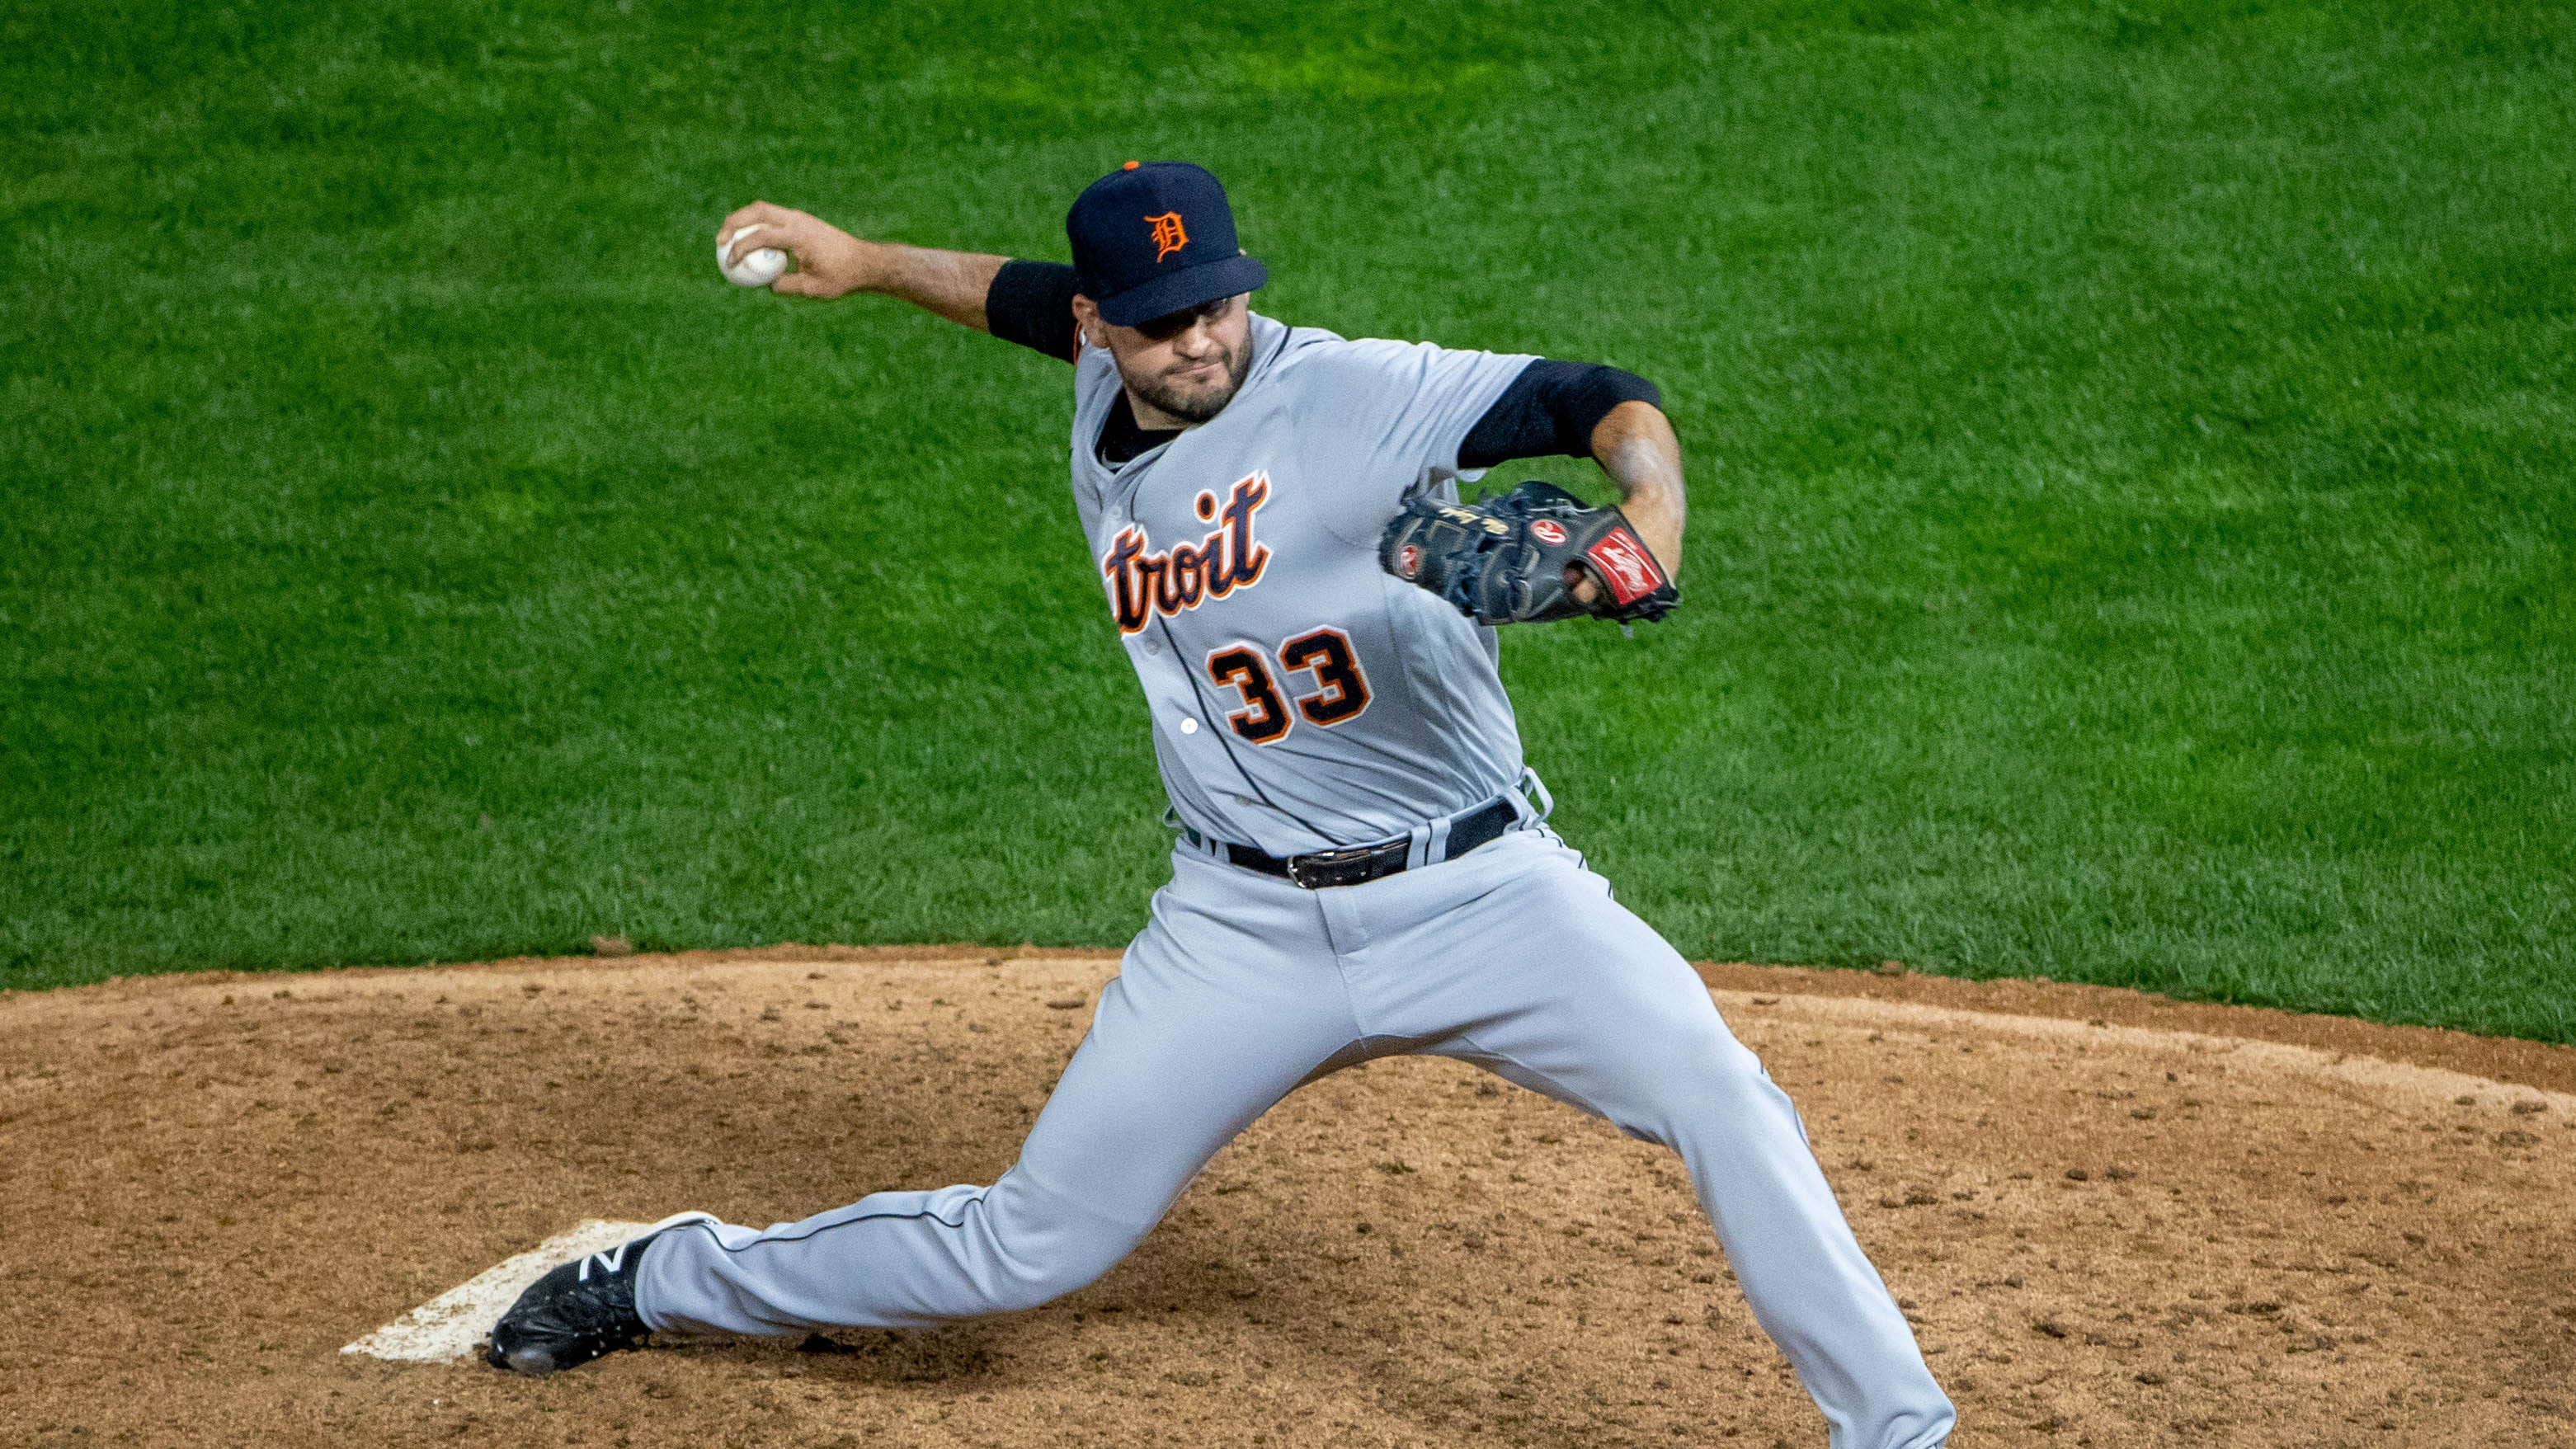 Detroit Tigers reliever Bryan Garcia delivers a pitch in the 10th inning against the Minnesota Twins at Target Field, Sept. 22, 2020.